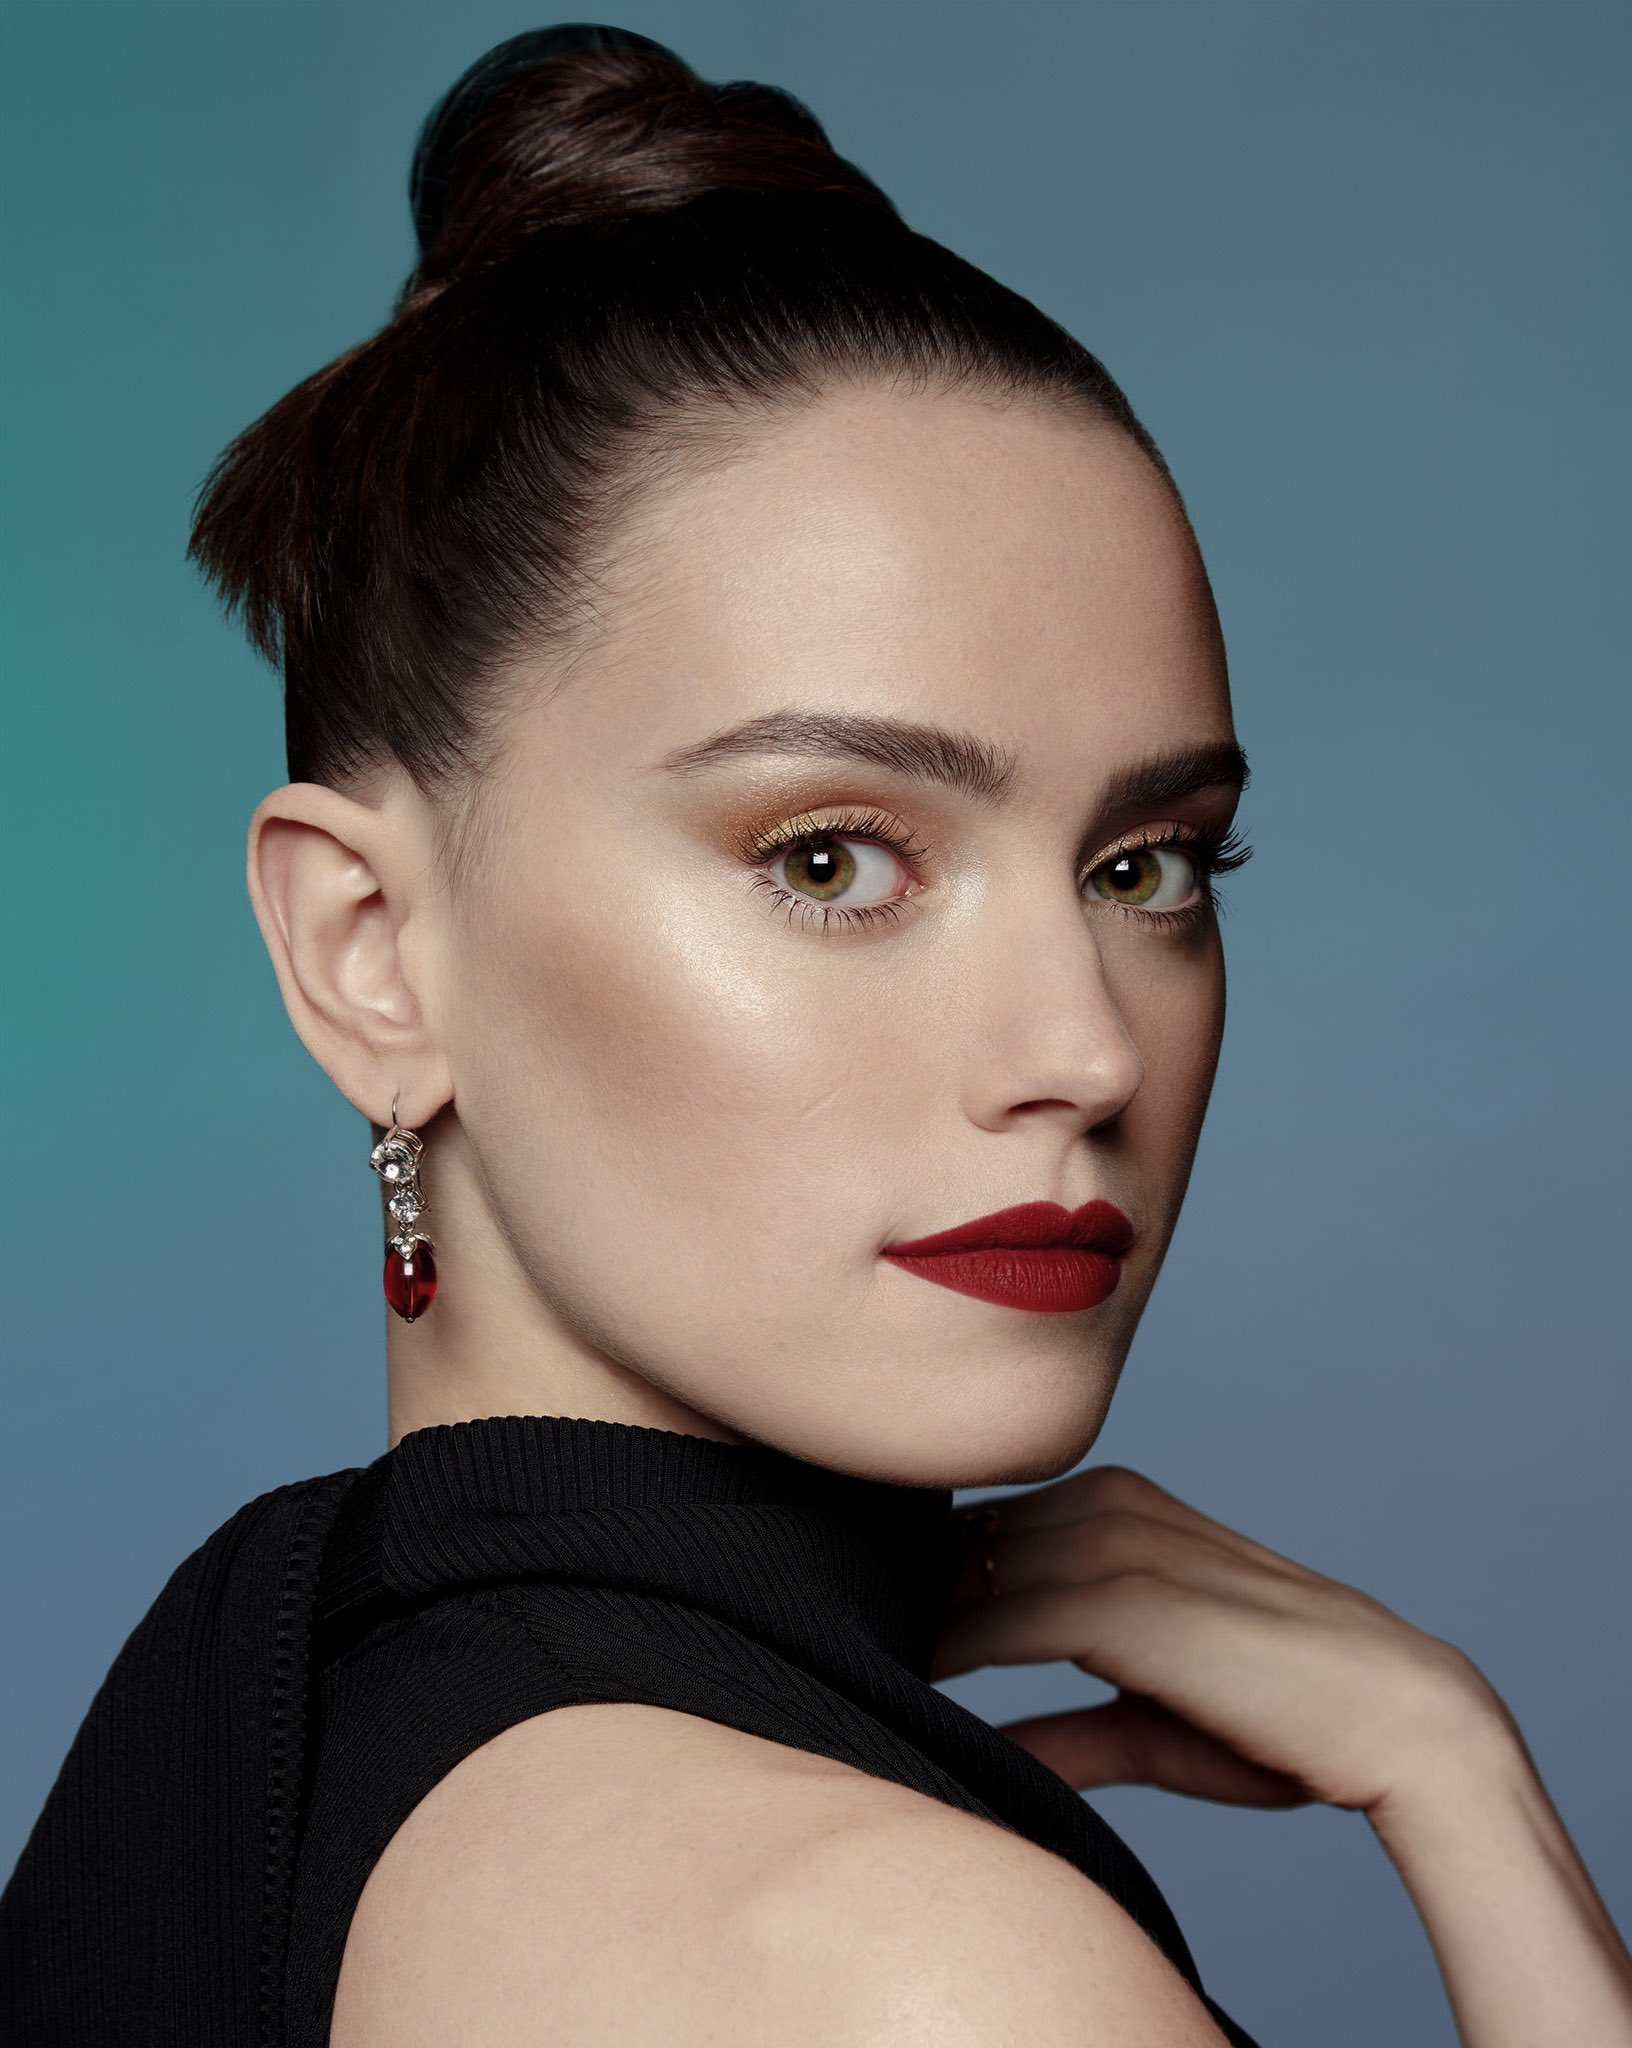 Actress Daisy Ridley has endometriosis and PCOS